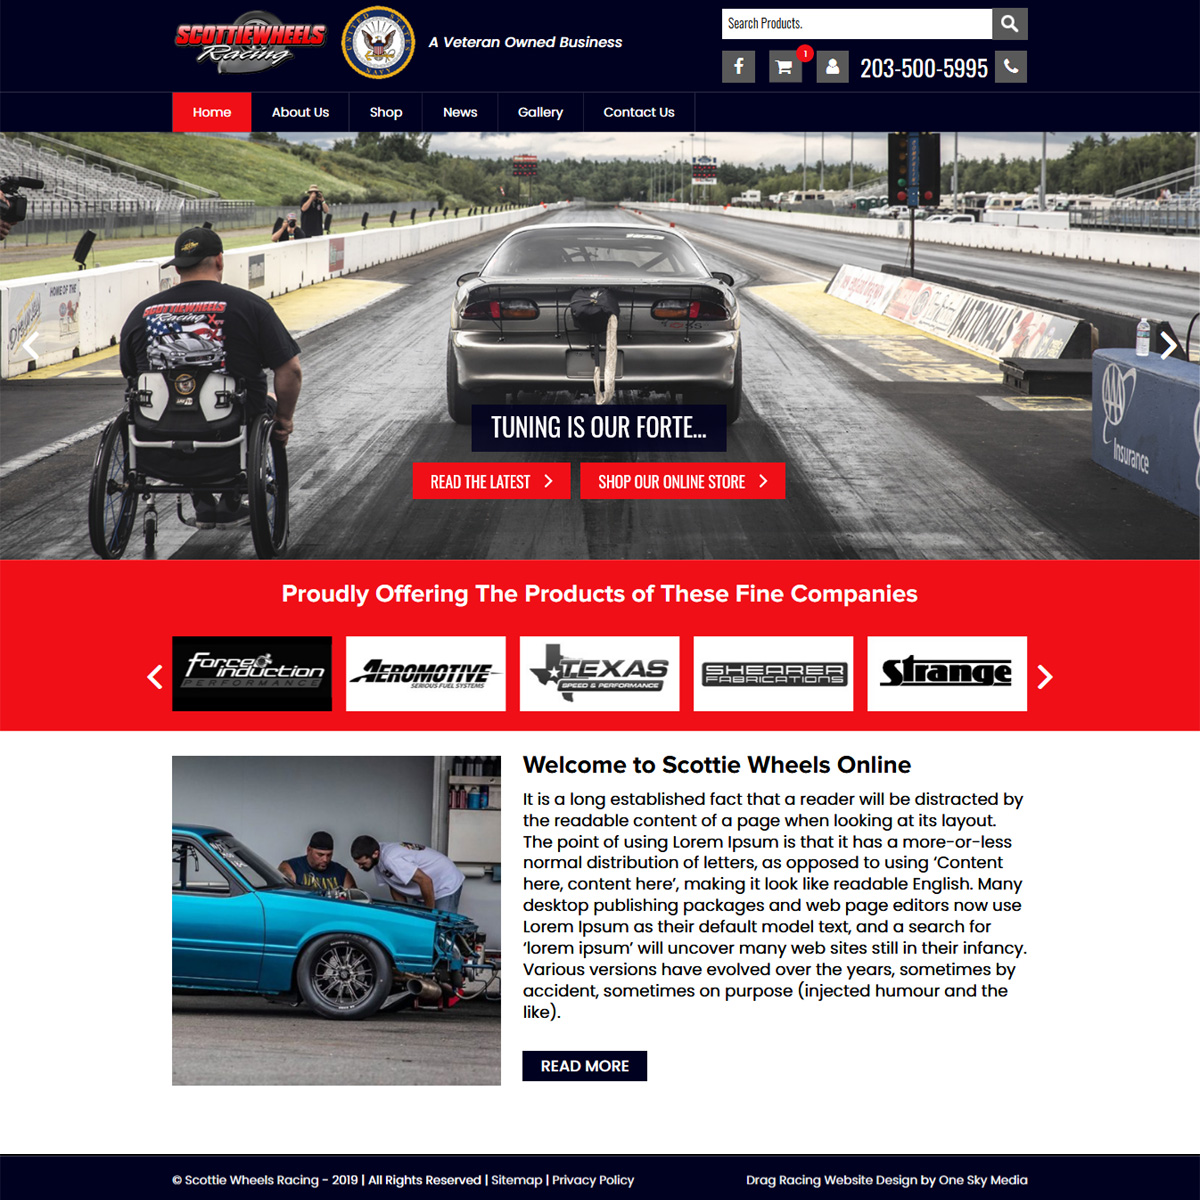 Scottie Wheels drag raging retailer website design